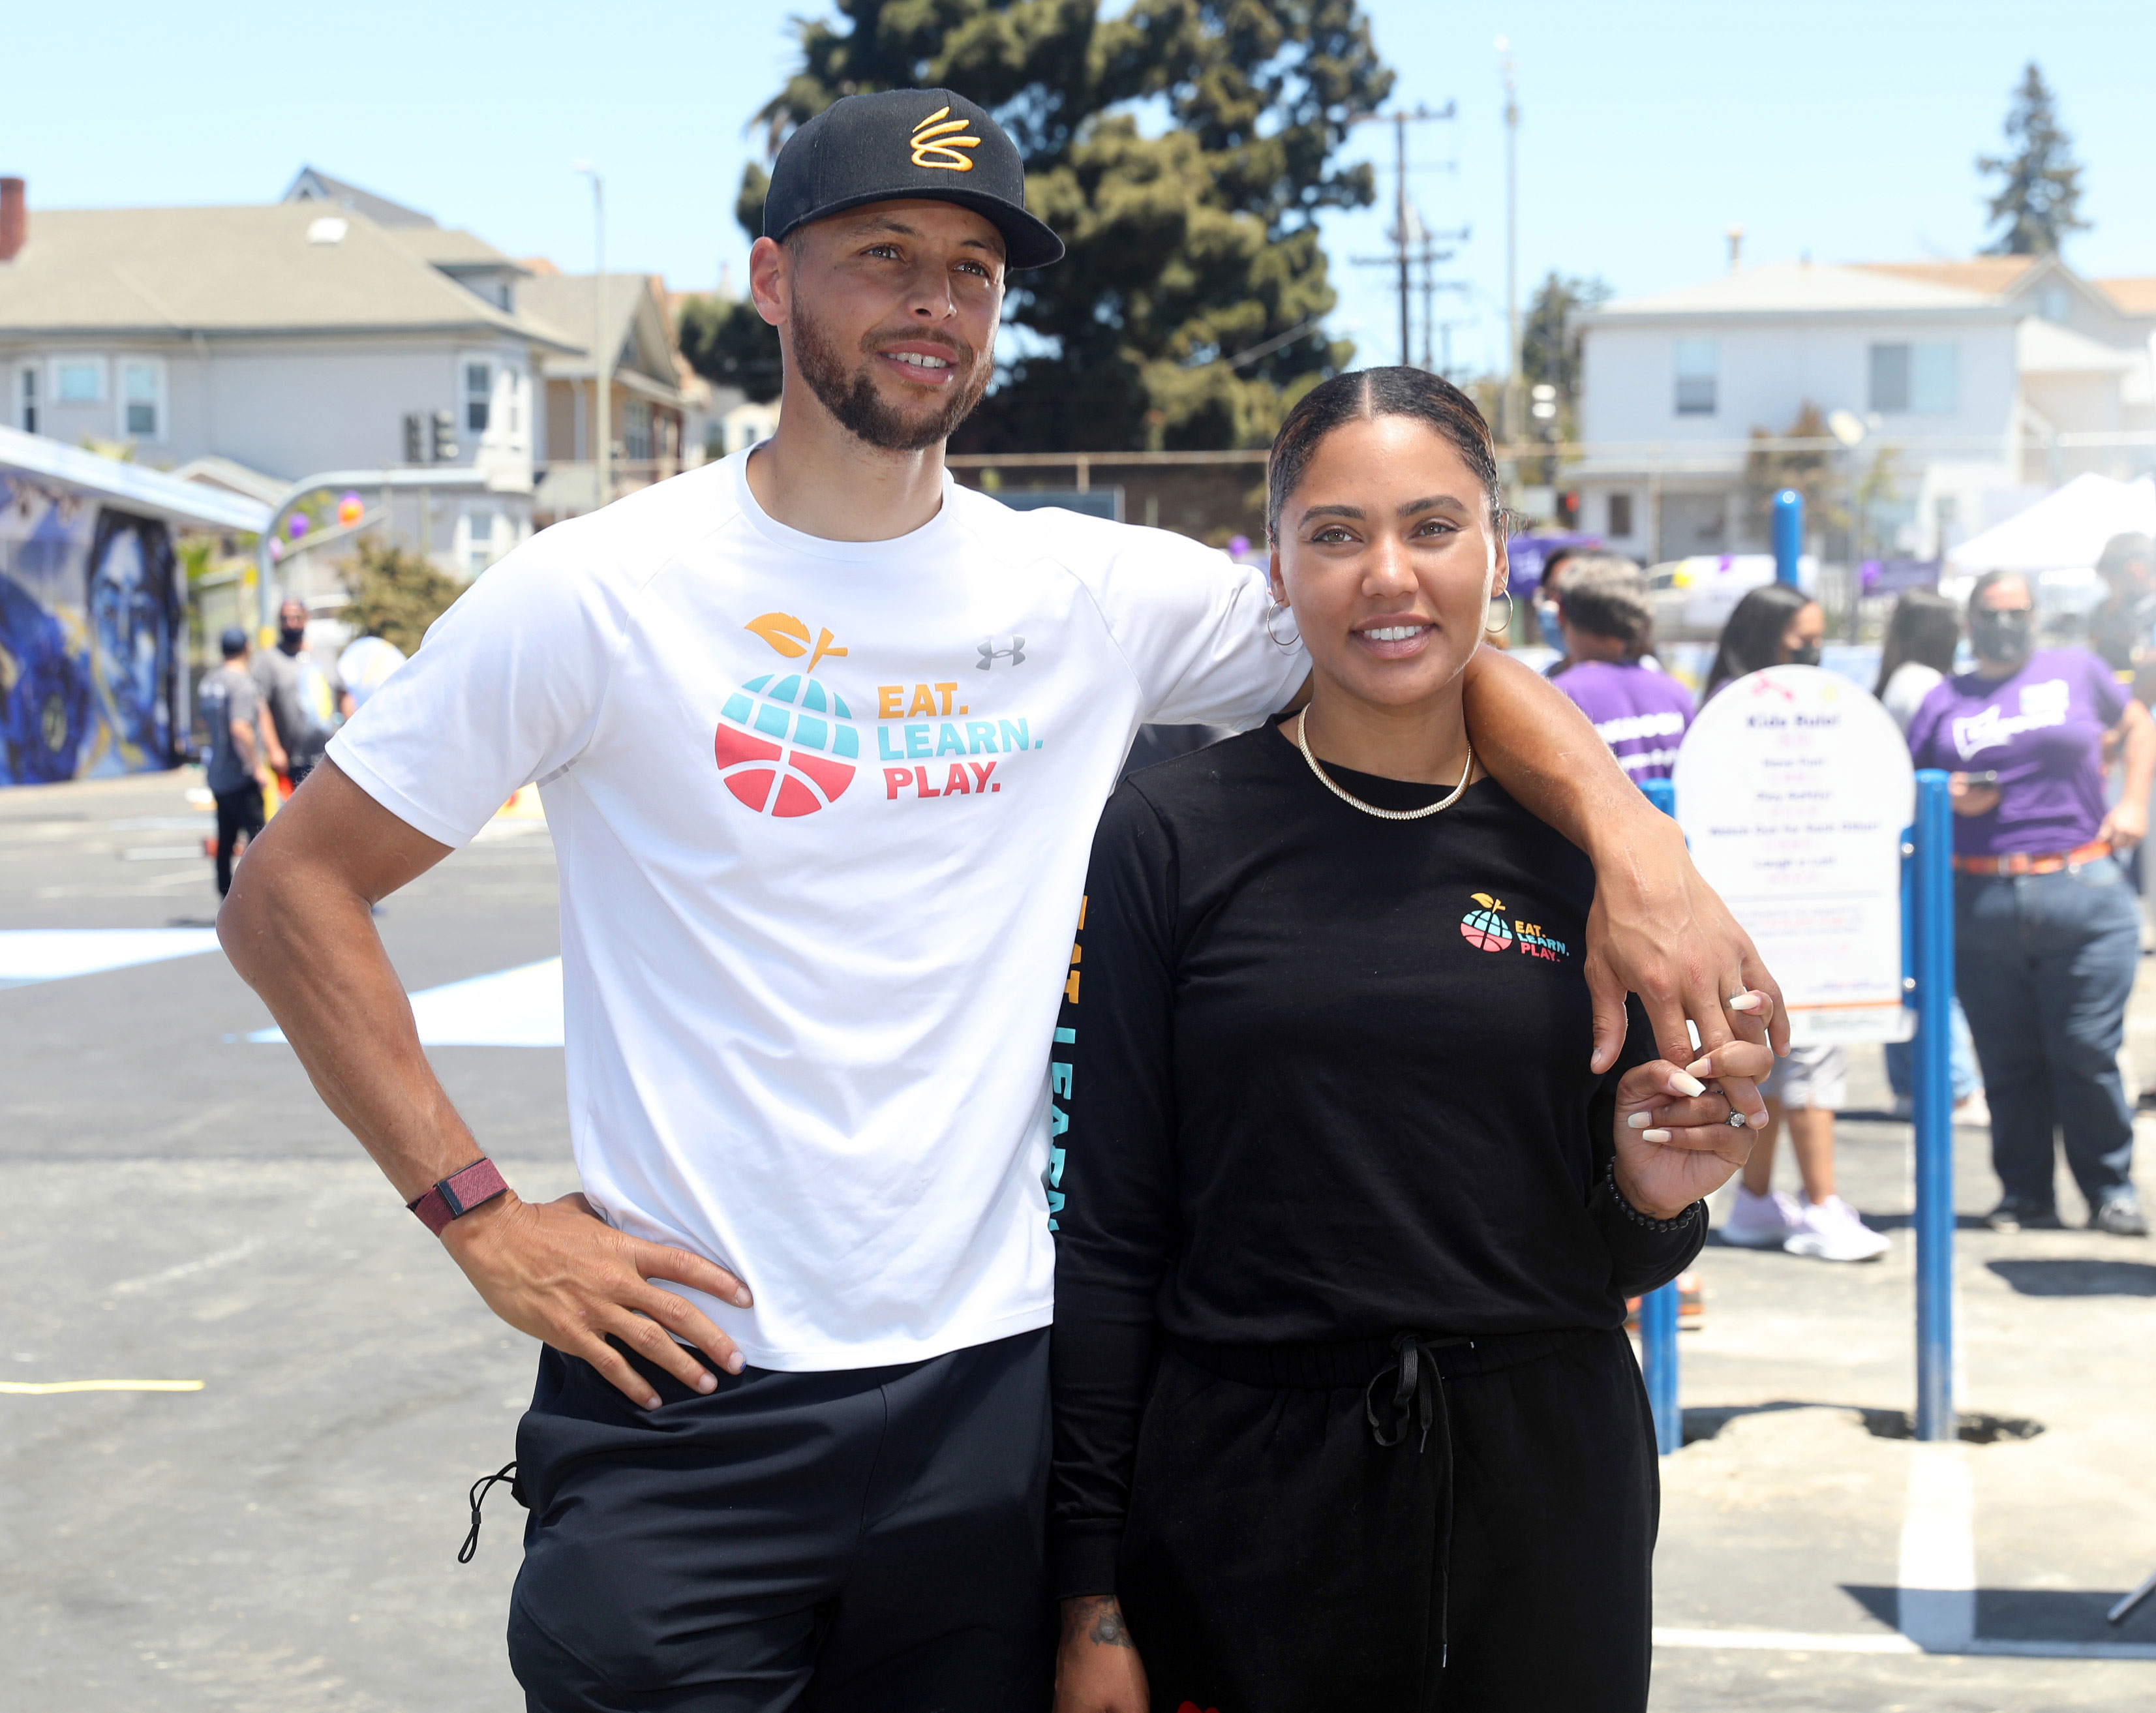 Steph and Ayesha Curry help remodel an Oakland elementary school playground